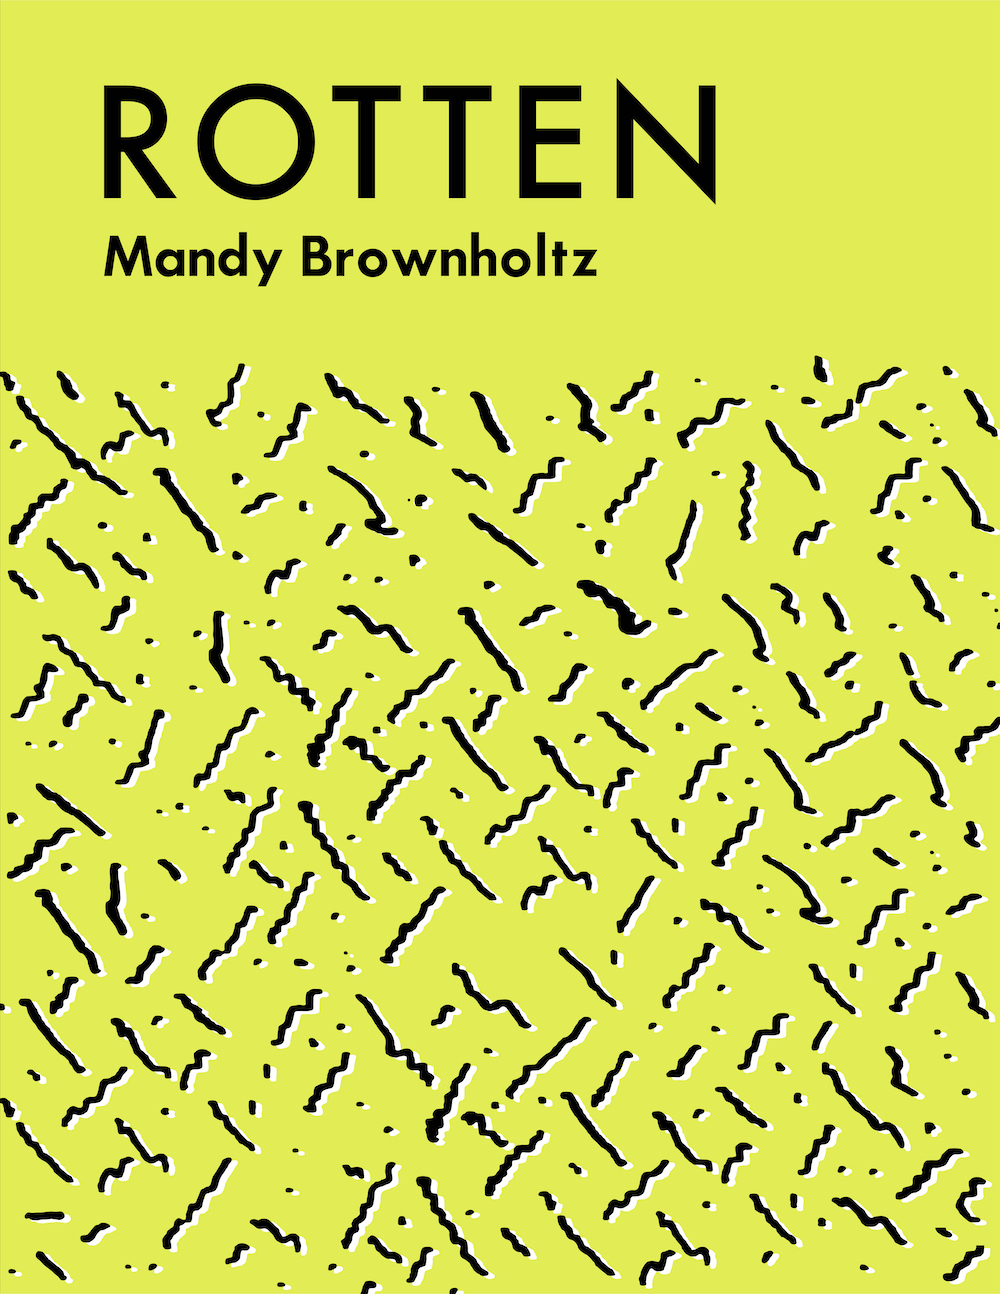 The cover of Rotten by Mandy Brownholtz.